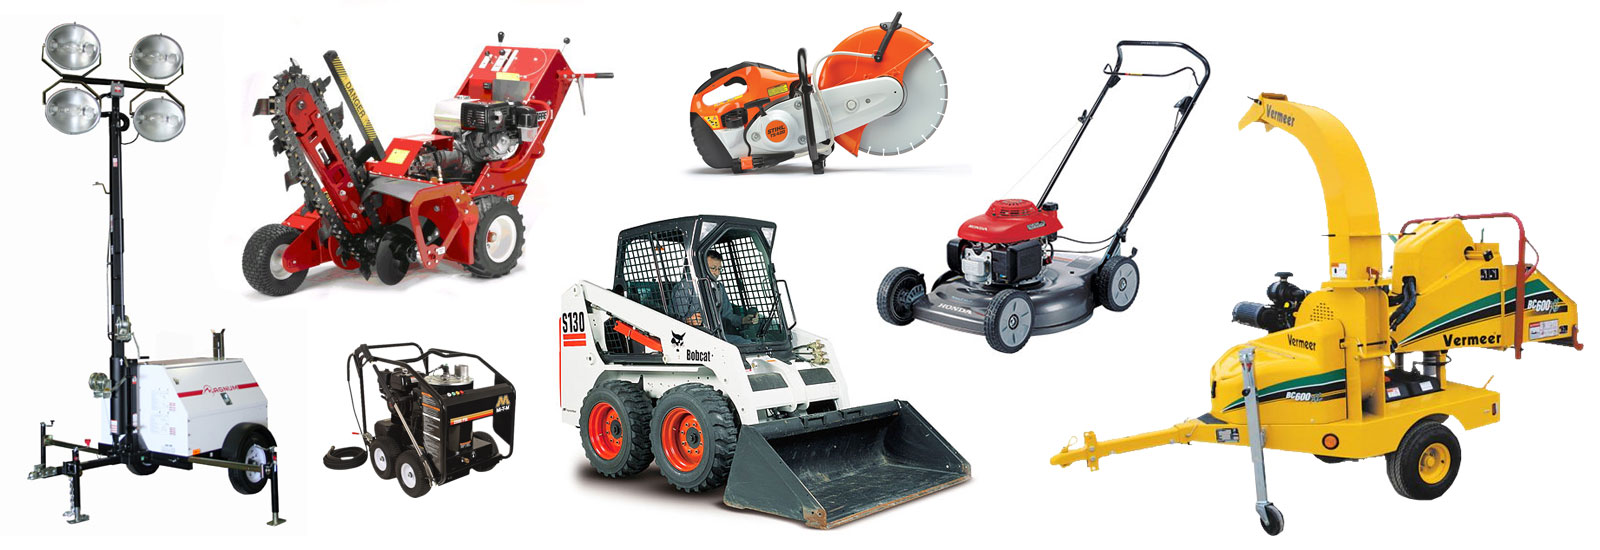 Equipment Rentals in Concord CA | Tools Rental & Contractor Rentals